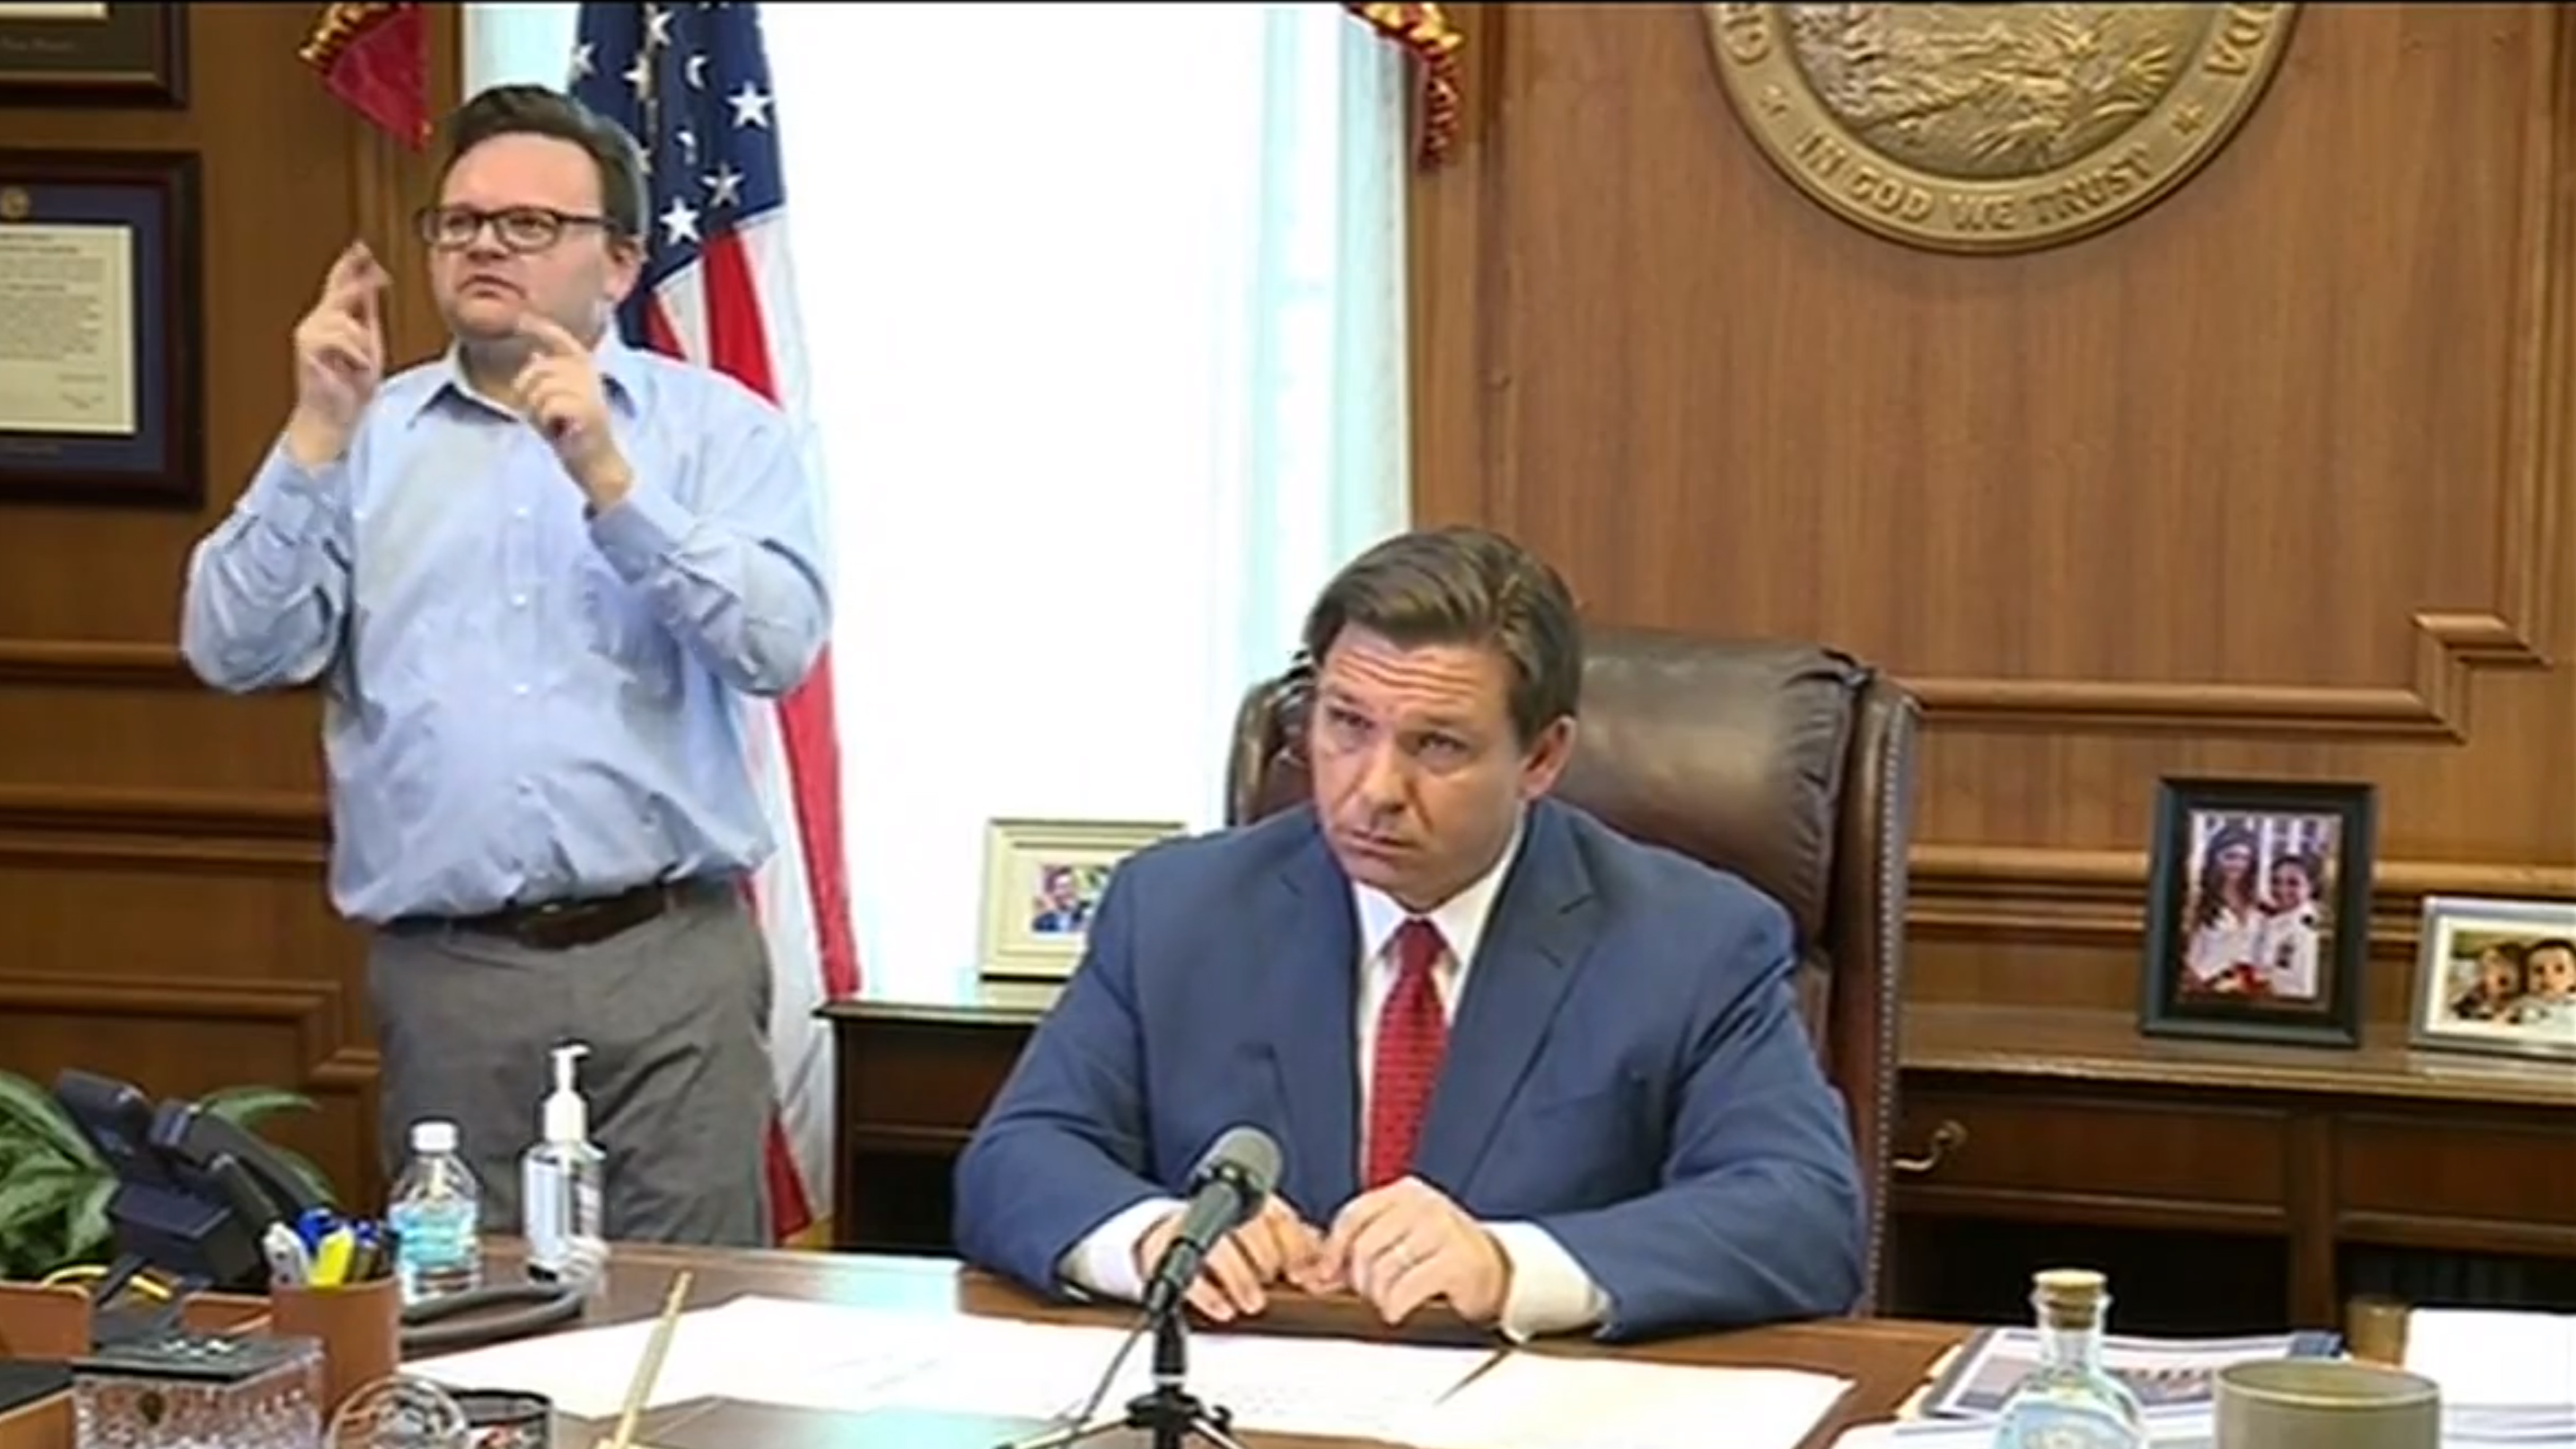 DeSantis Tells Floridians To Stay At Home Except For Essential Services